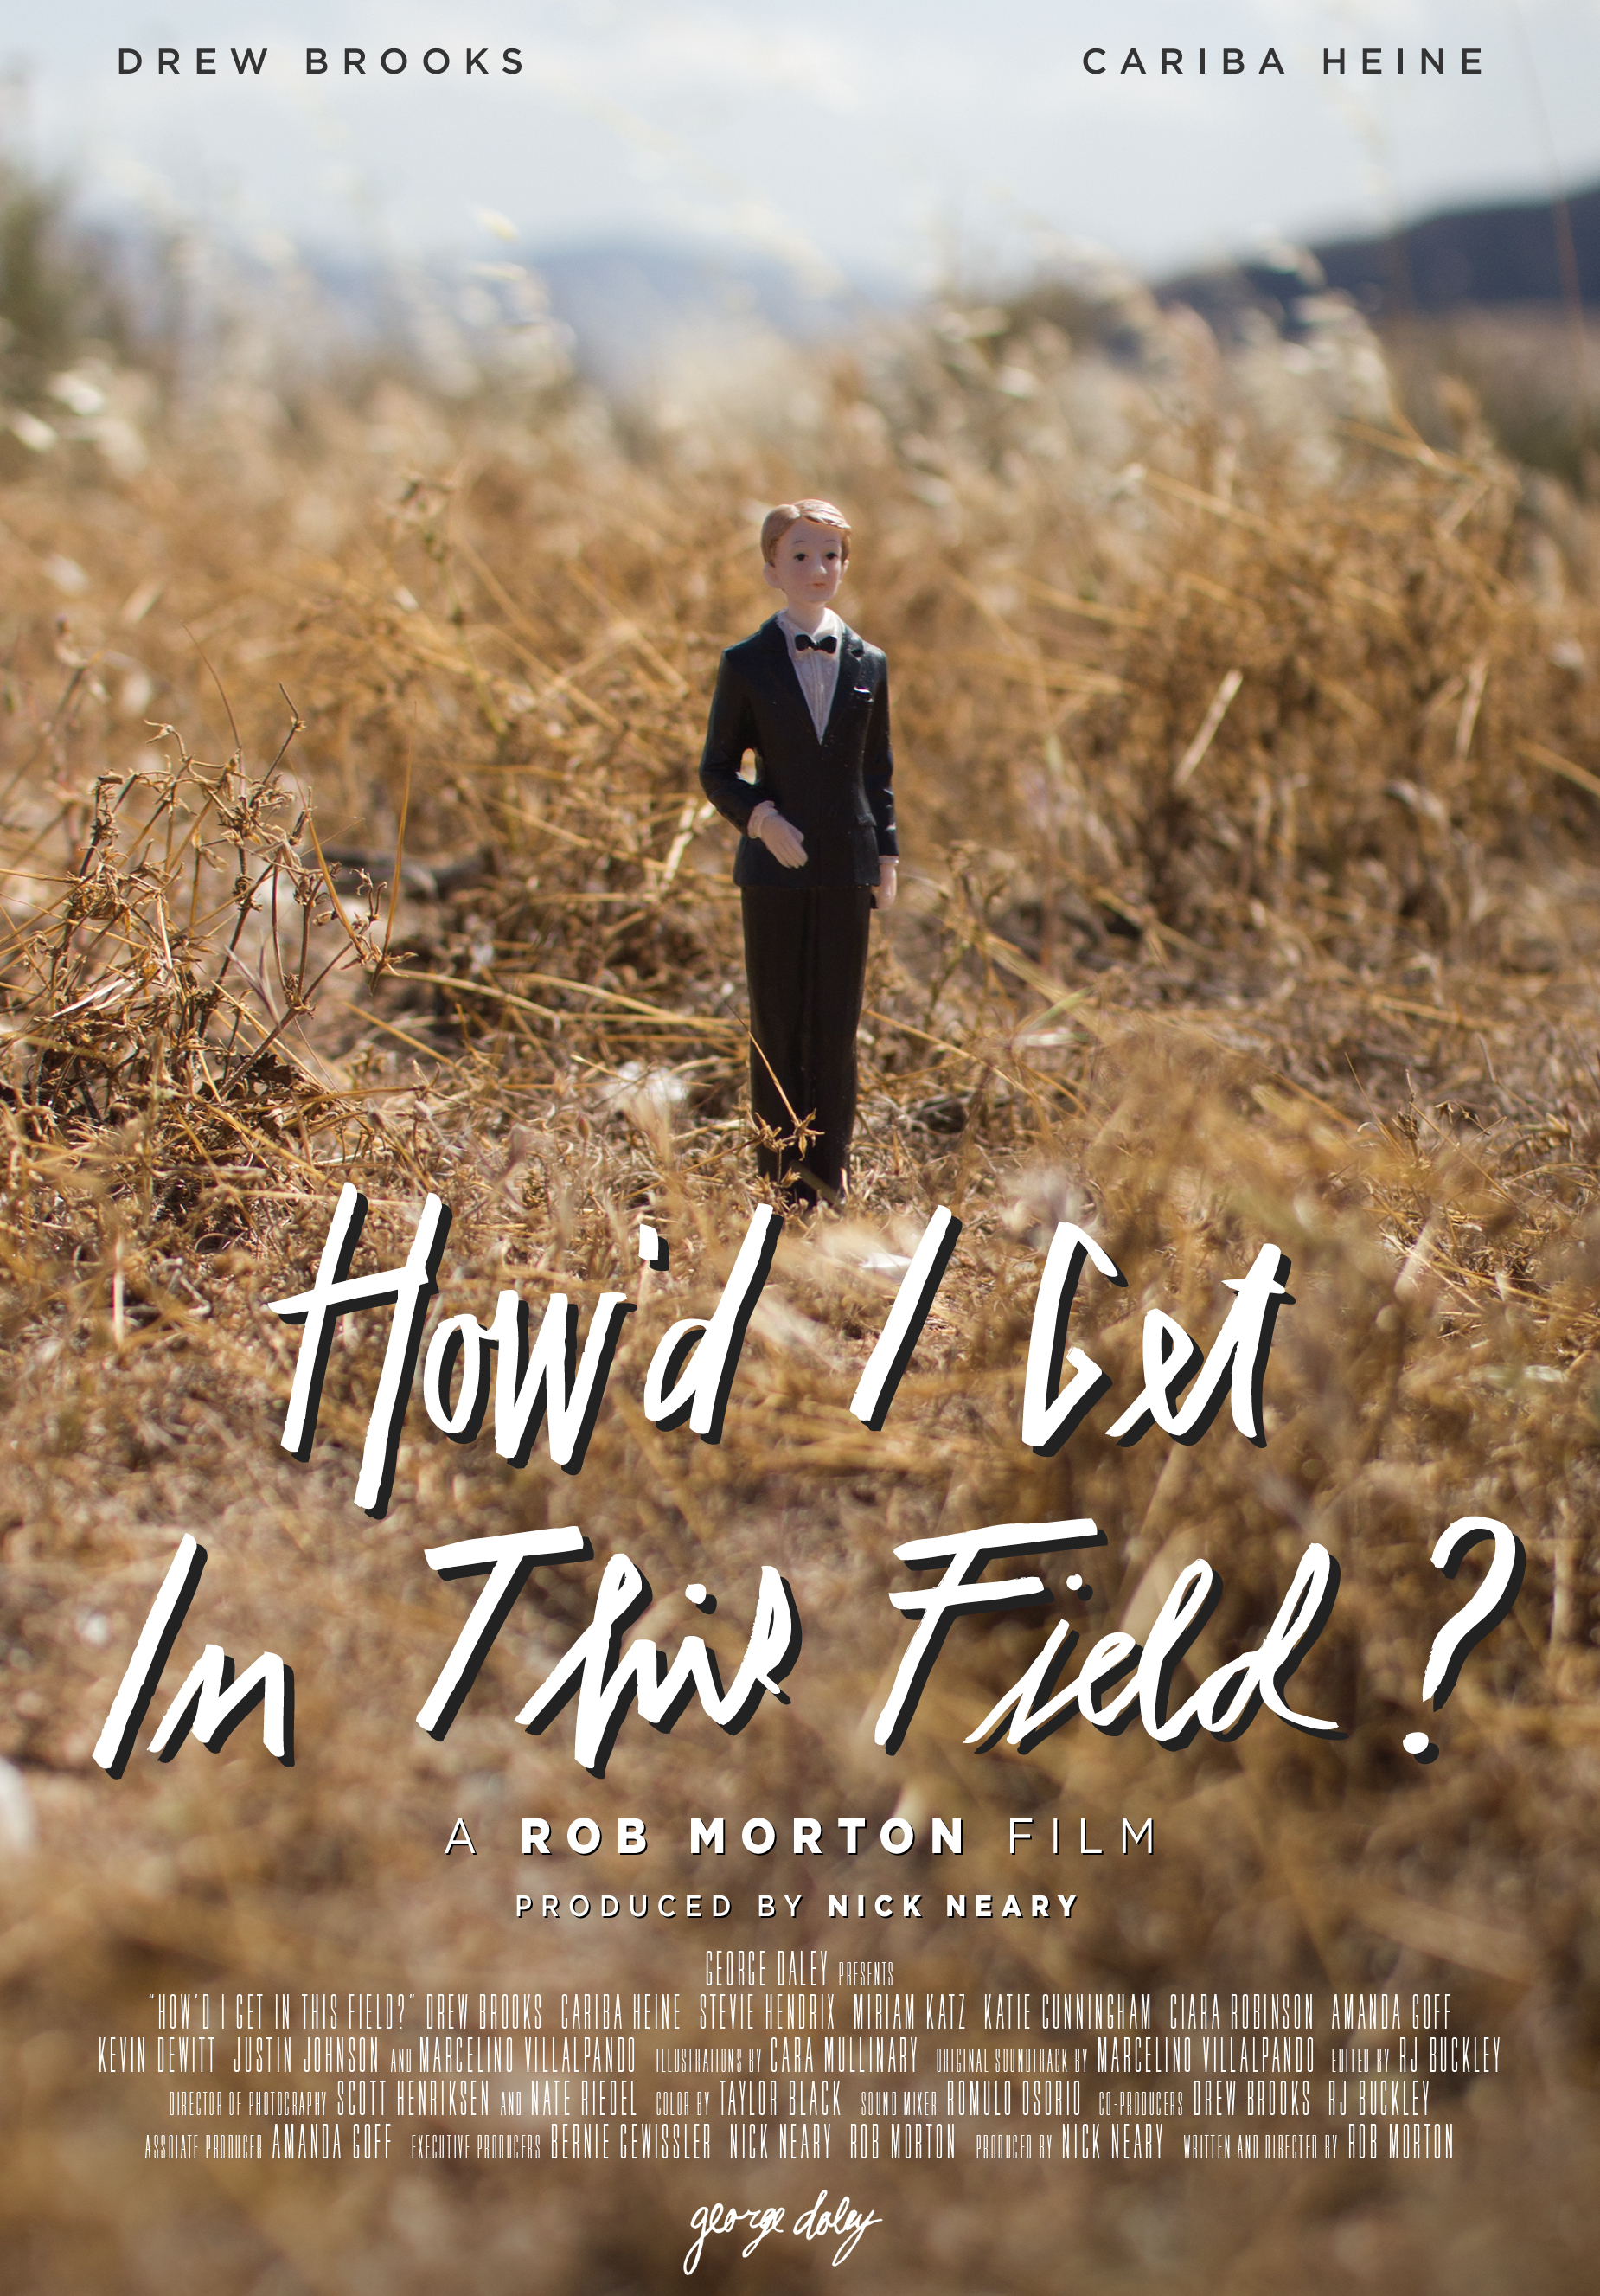 rob morton // how'd i get in this field? // short film